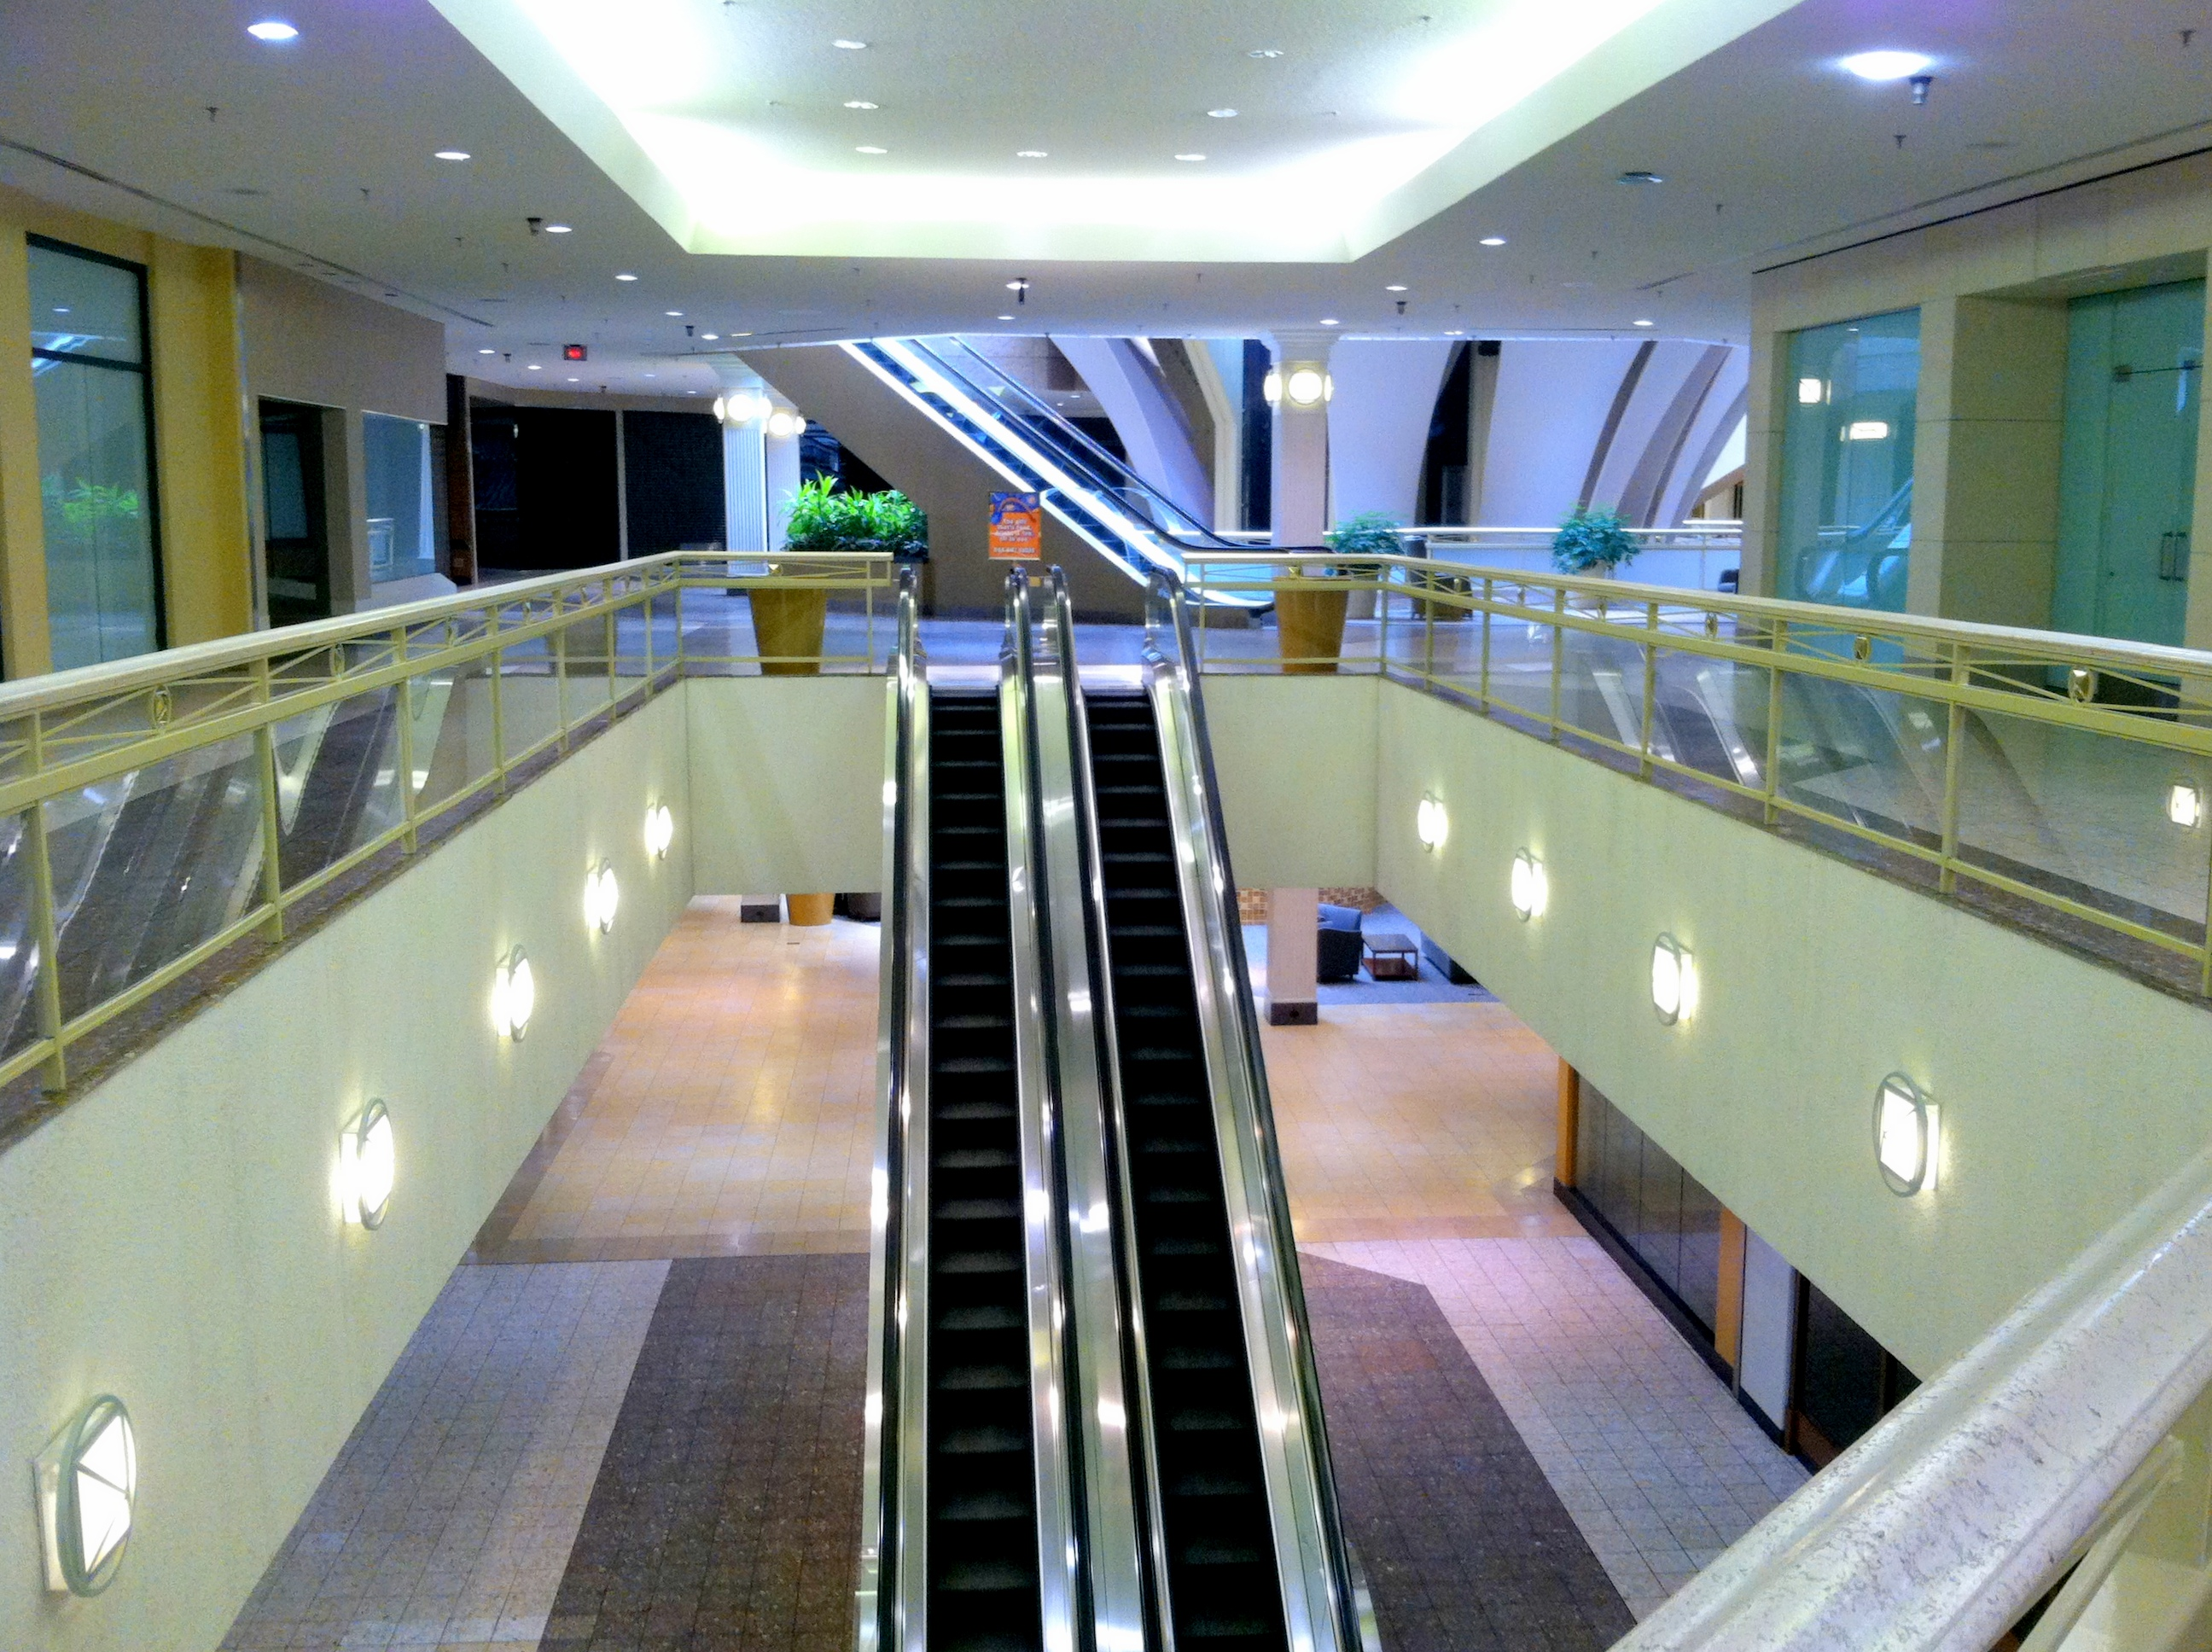 The escalators run for no one.